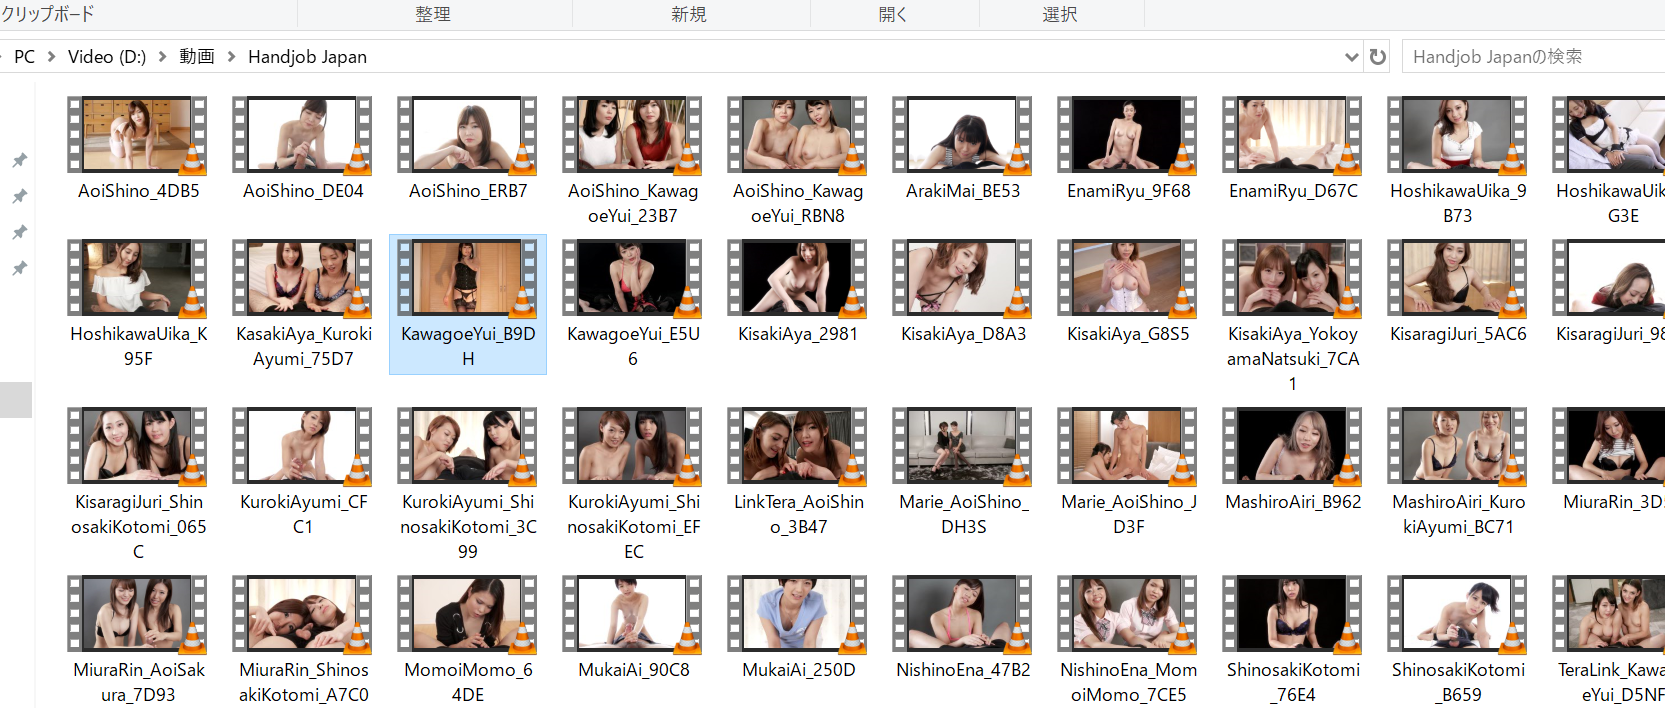 uncensored JAV erotic videos that I downloaded and got when I joined Handjob Japan